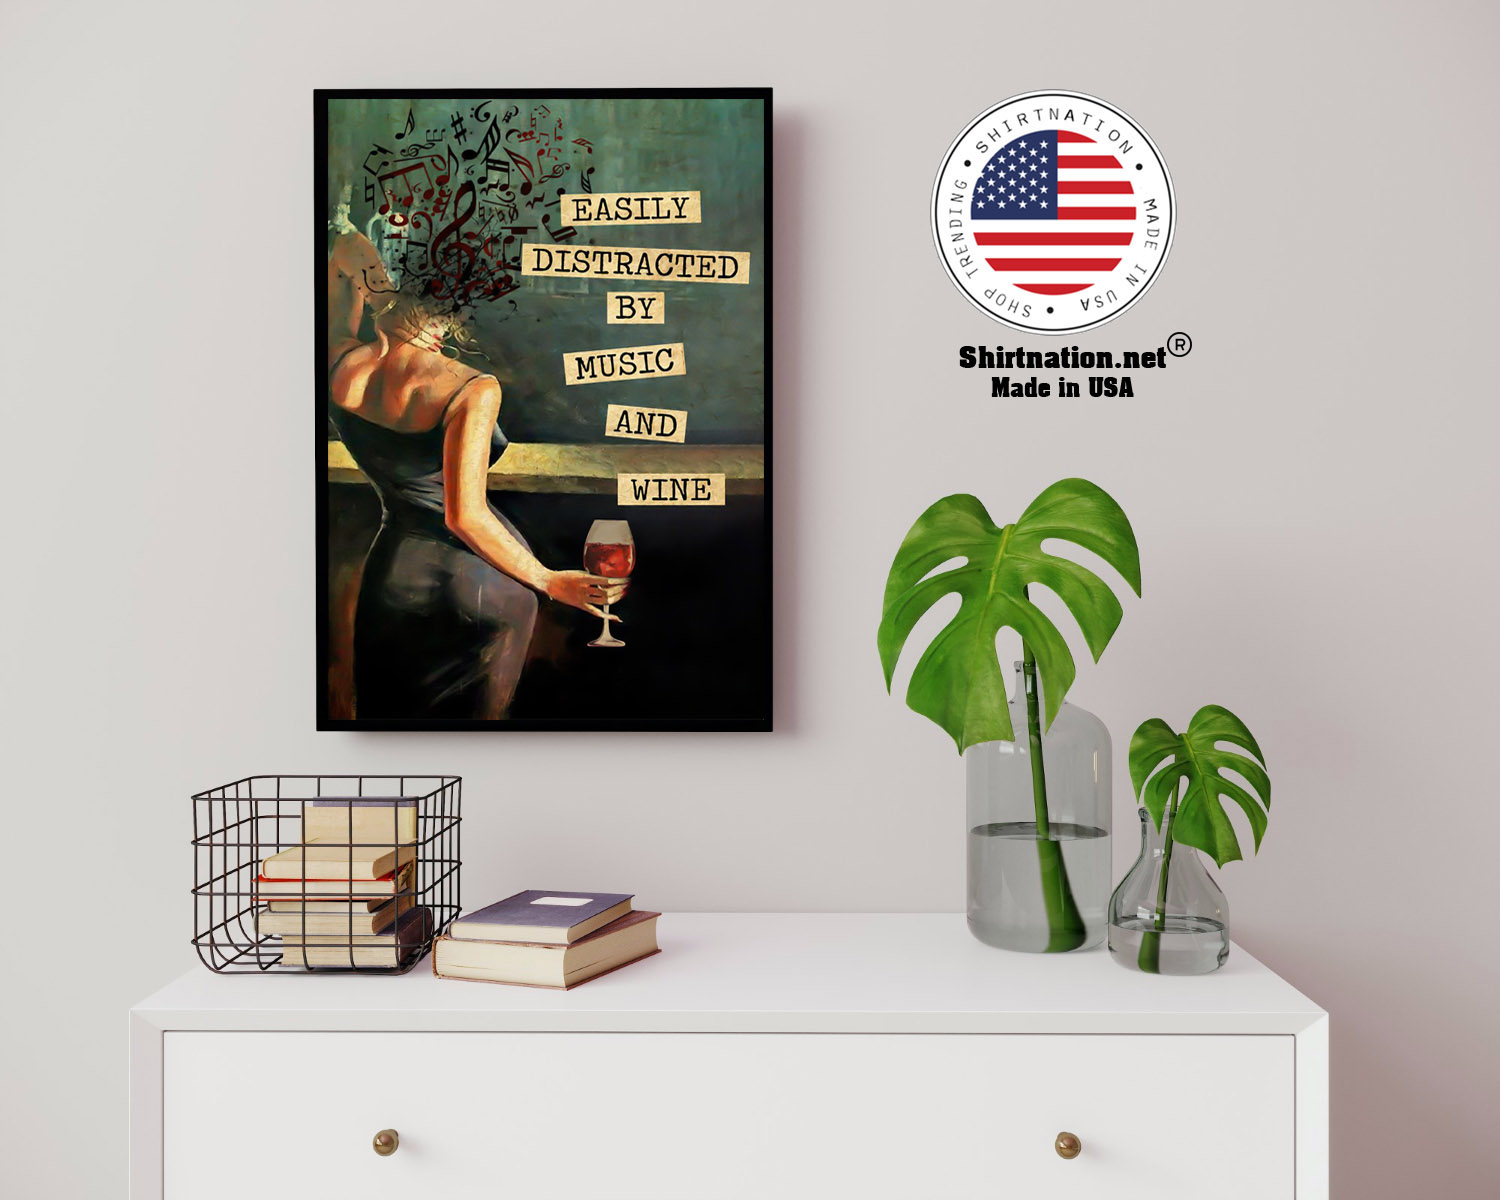 Vintage easily distracted by music and wine poster 14 3